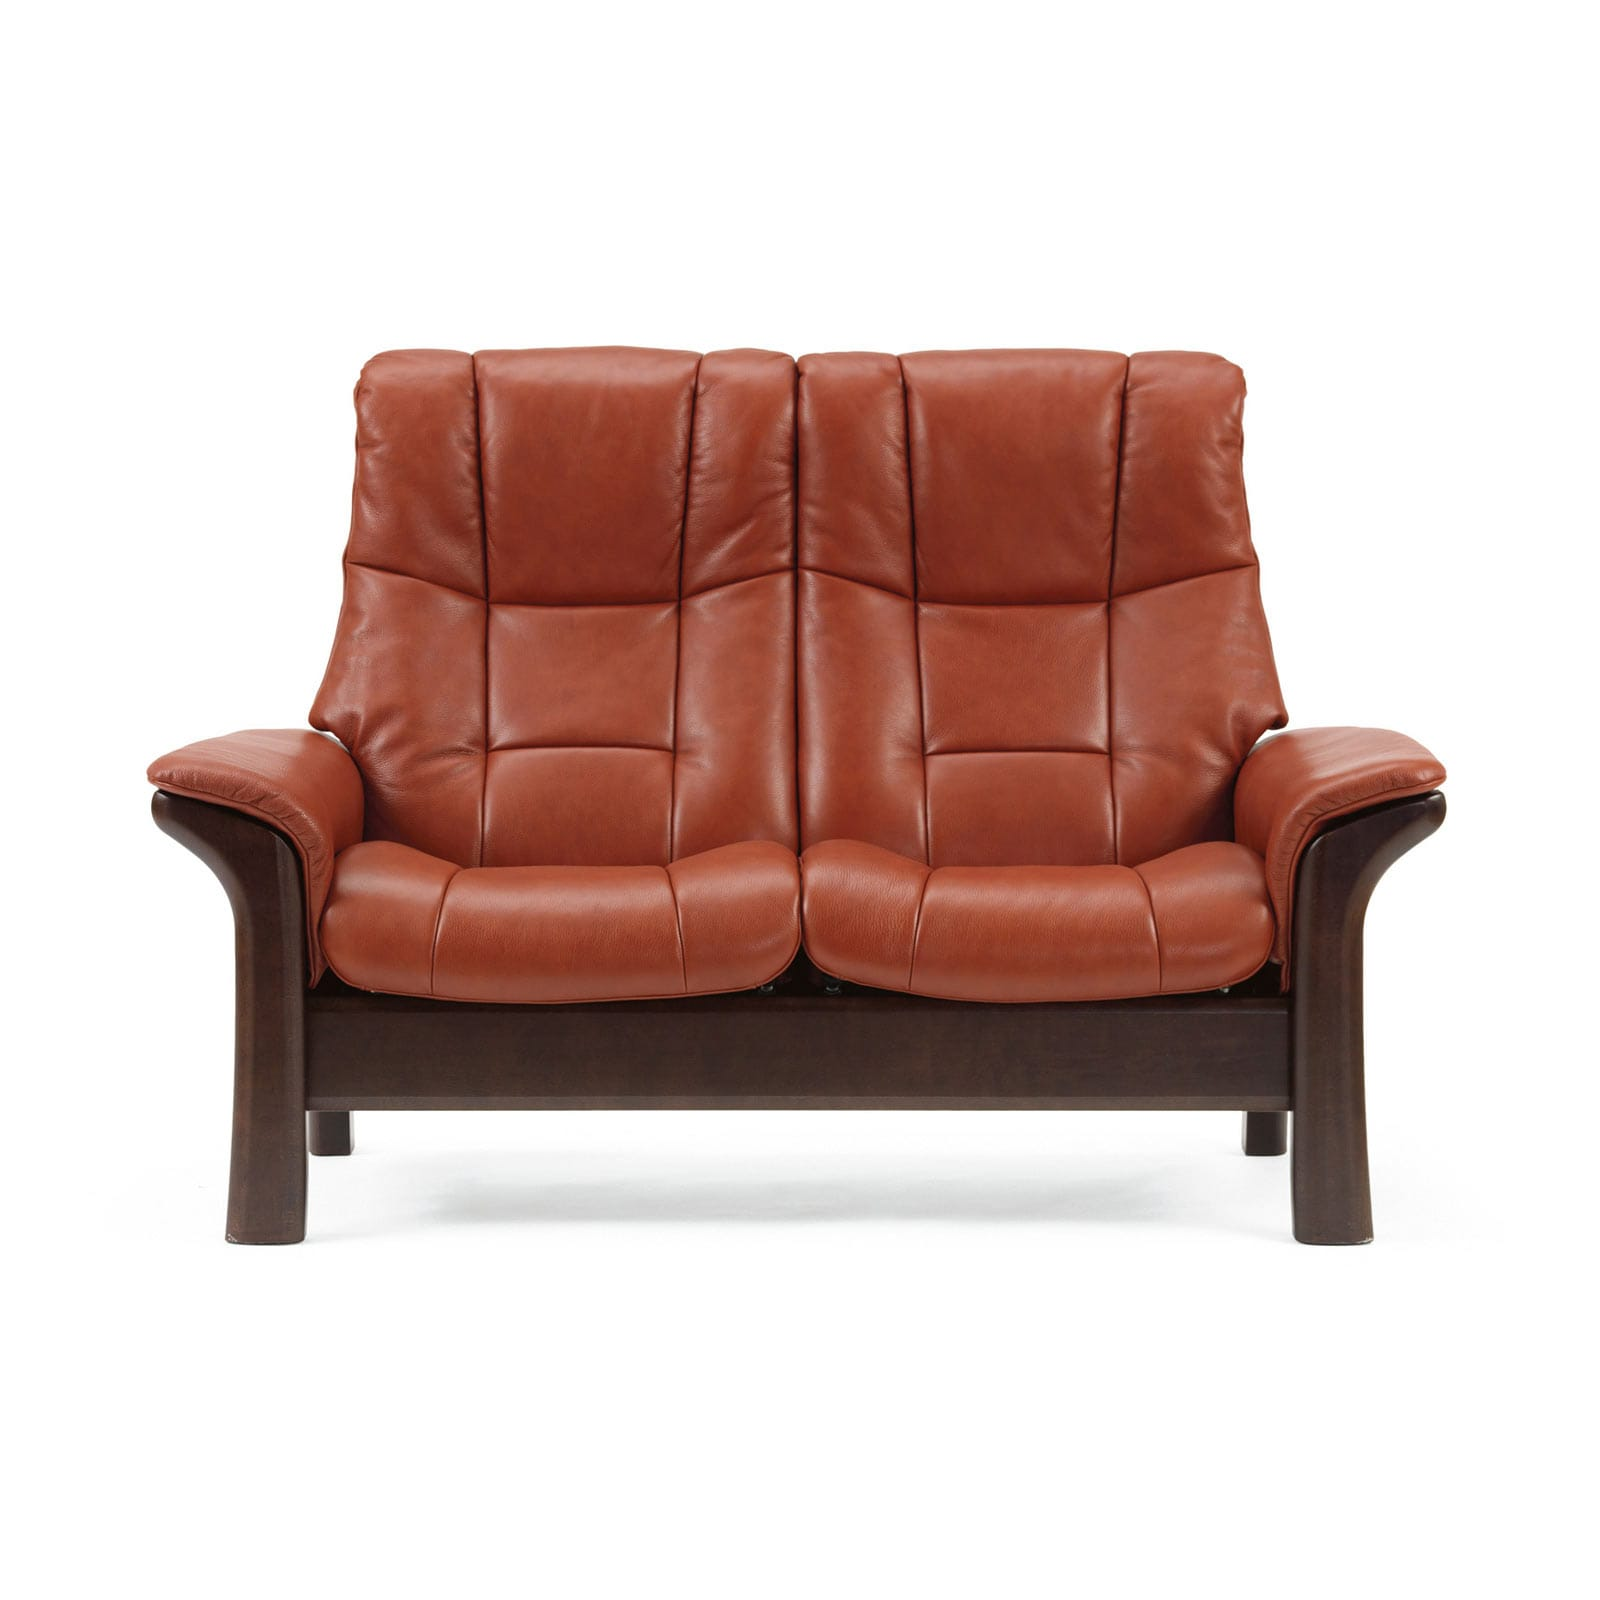 Stressless Paloma Stressless Sofa 2 Sitzer Windsor M Hoch Leder Paloma Copper